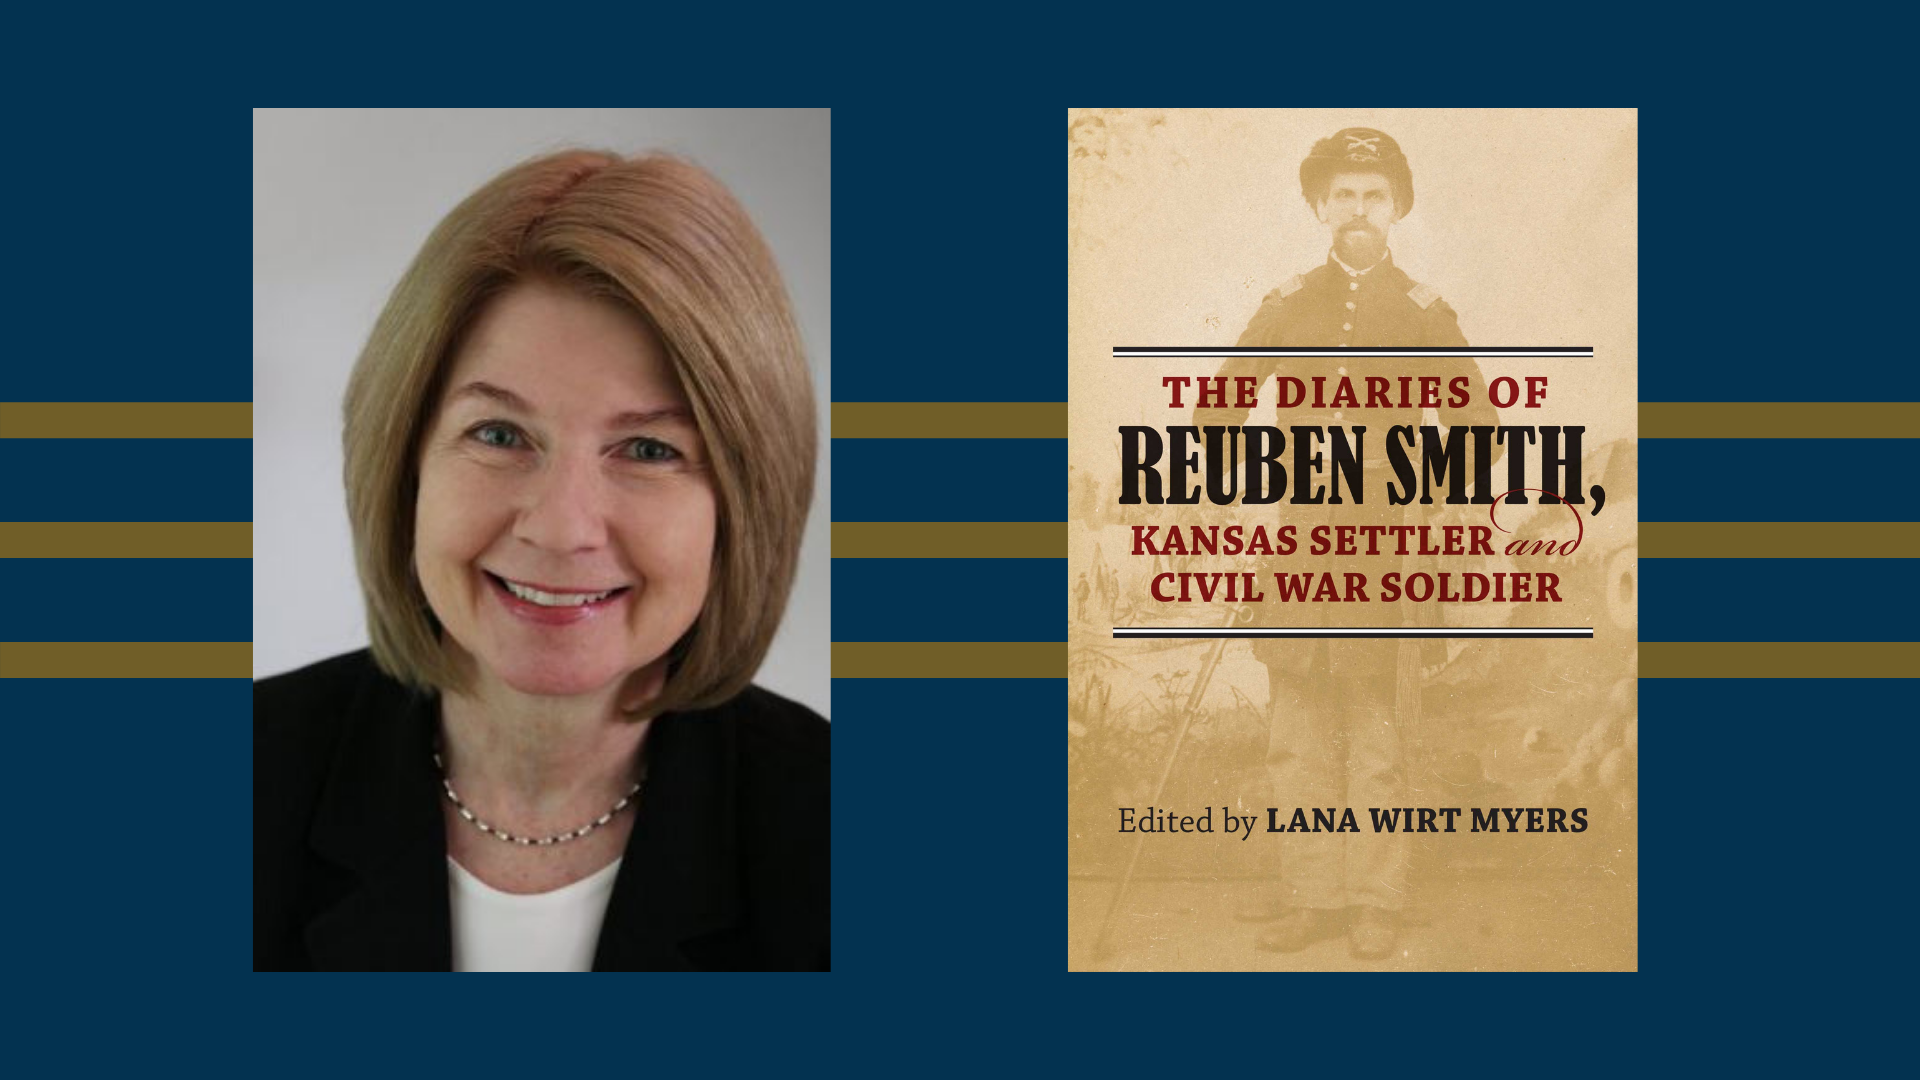 Lana Wirt Myers, author of The Diaries of Reuben Smith, Kansas Settler and Civil War Soldier